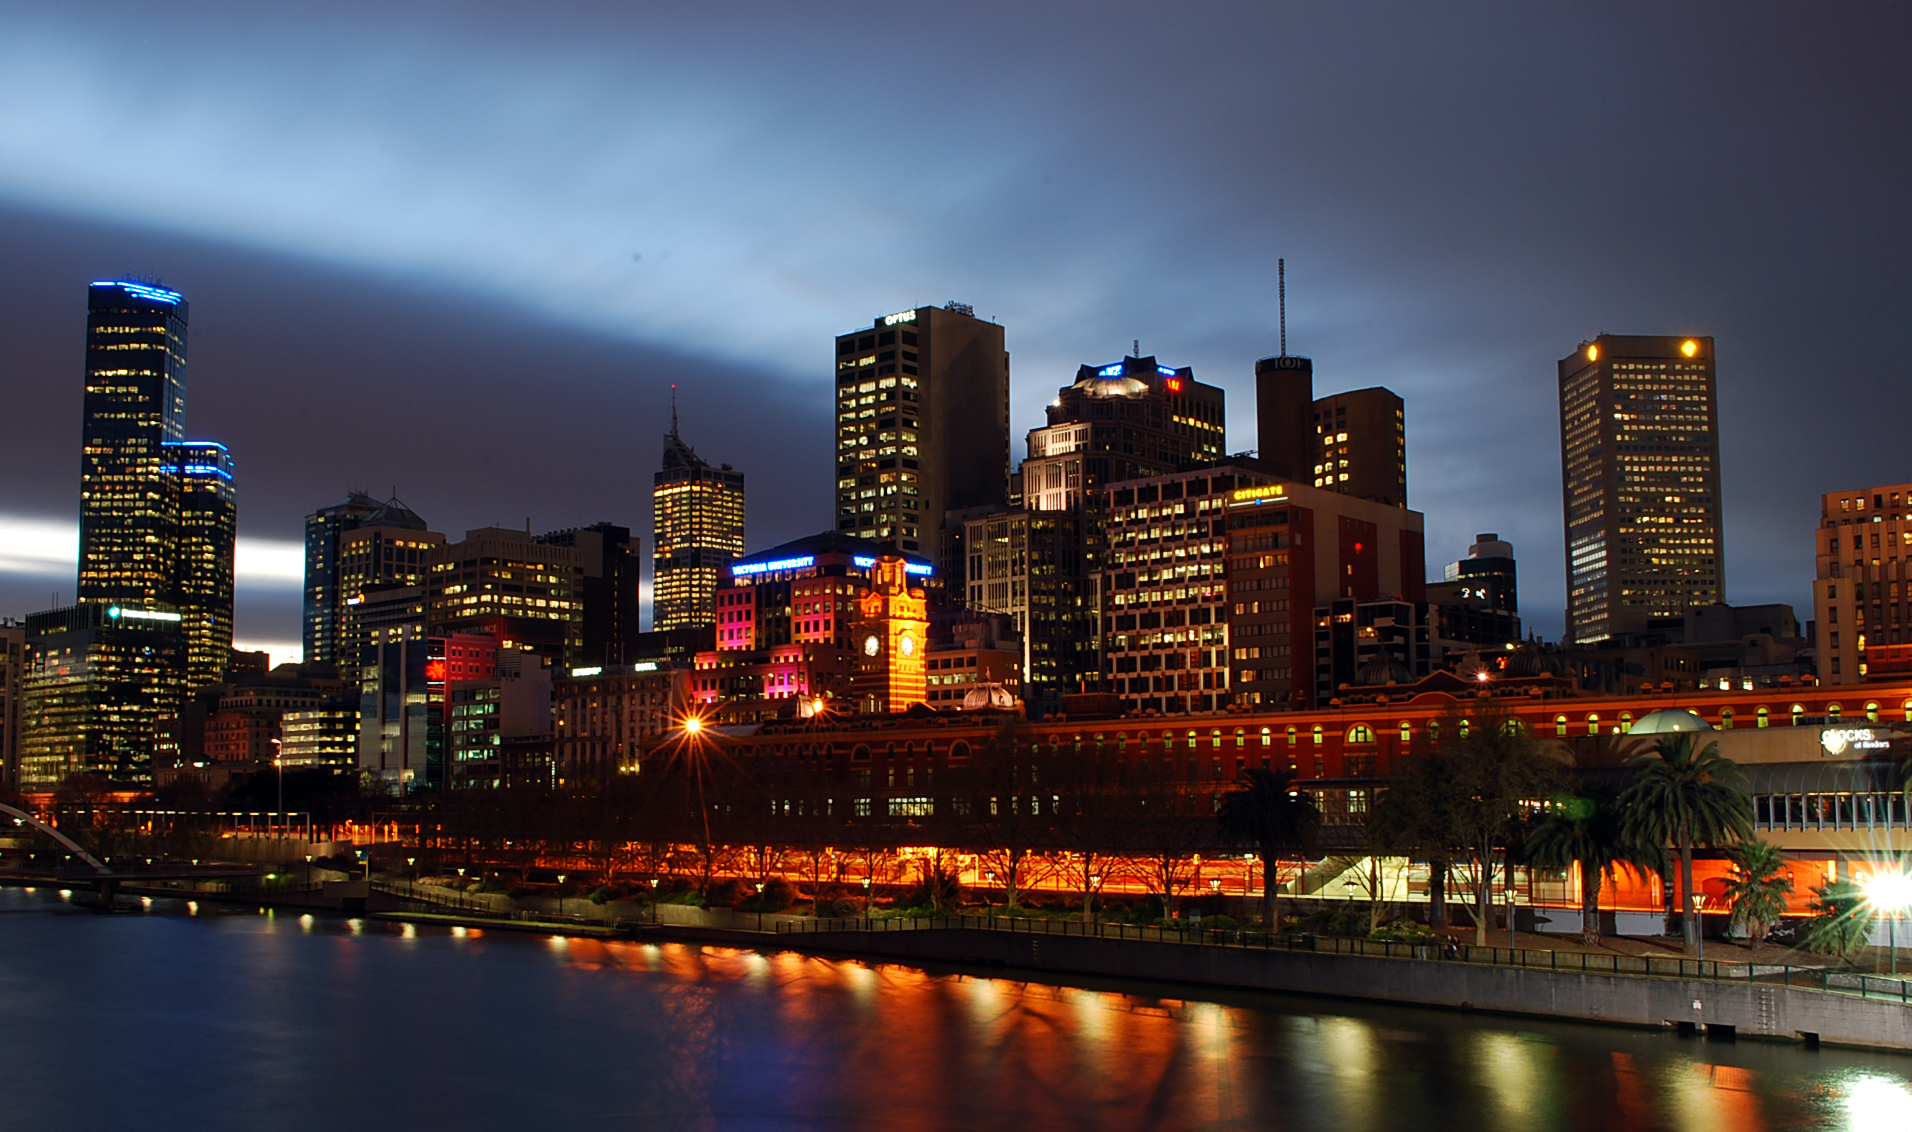 File:Melbourne At Nigh...